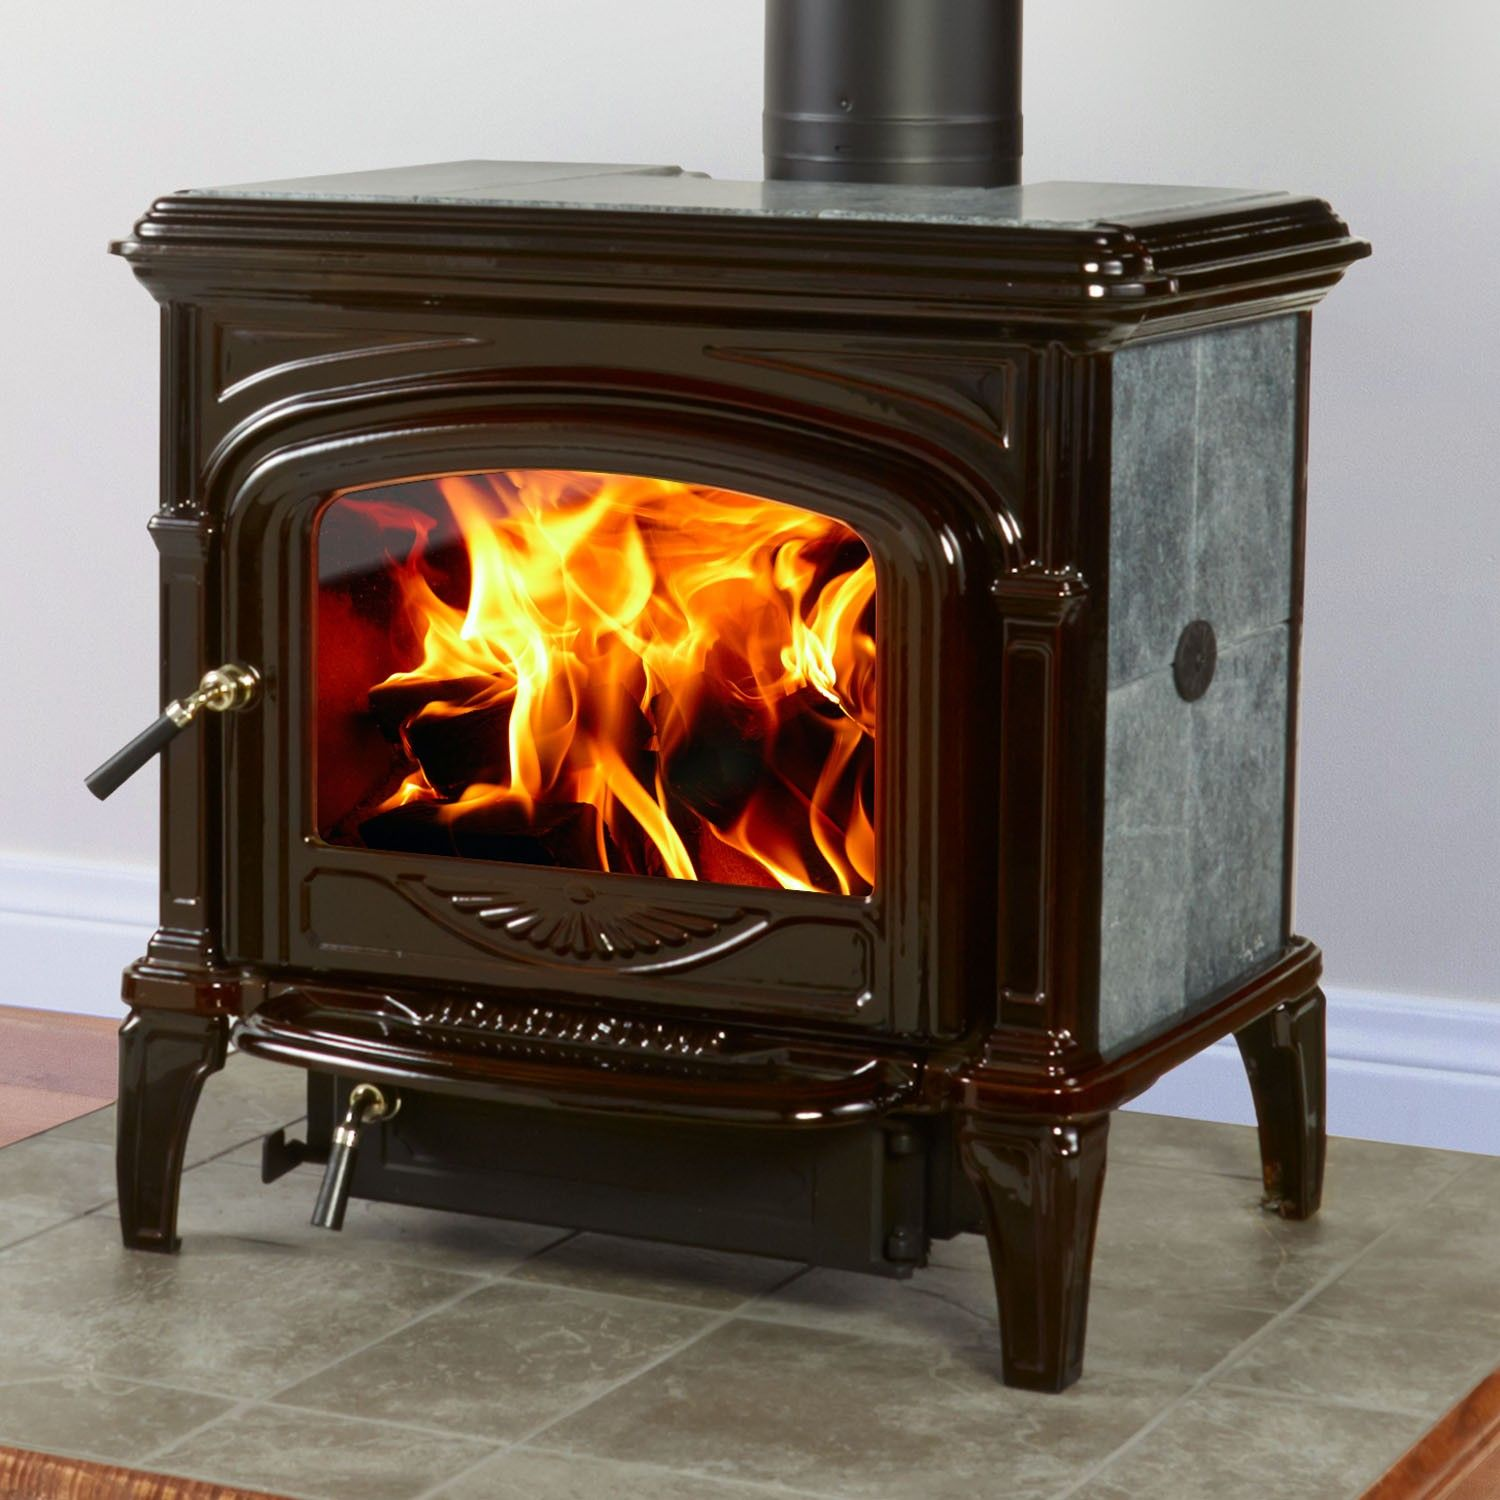 Phoenix 8612 Wood Stove With Brown Majolica Enamel Finish By Hearthstone Heats Up To 2000 Sq Ft Available From Rich S F Wood Stove Stove Wood Burning Stove